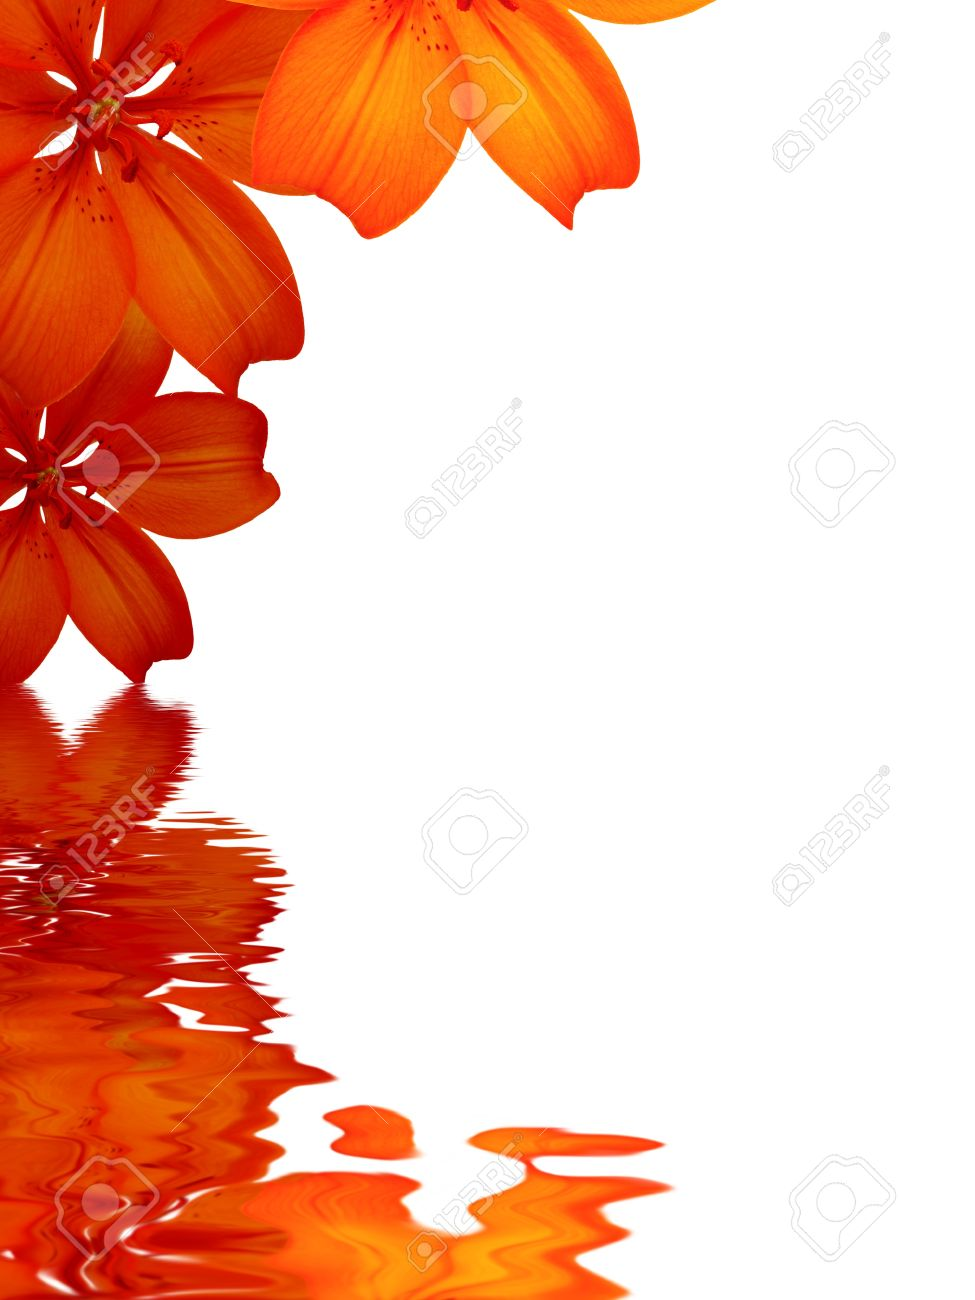 High Resolution Graphic Of Flowers Reflecting In Water On White ...